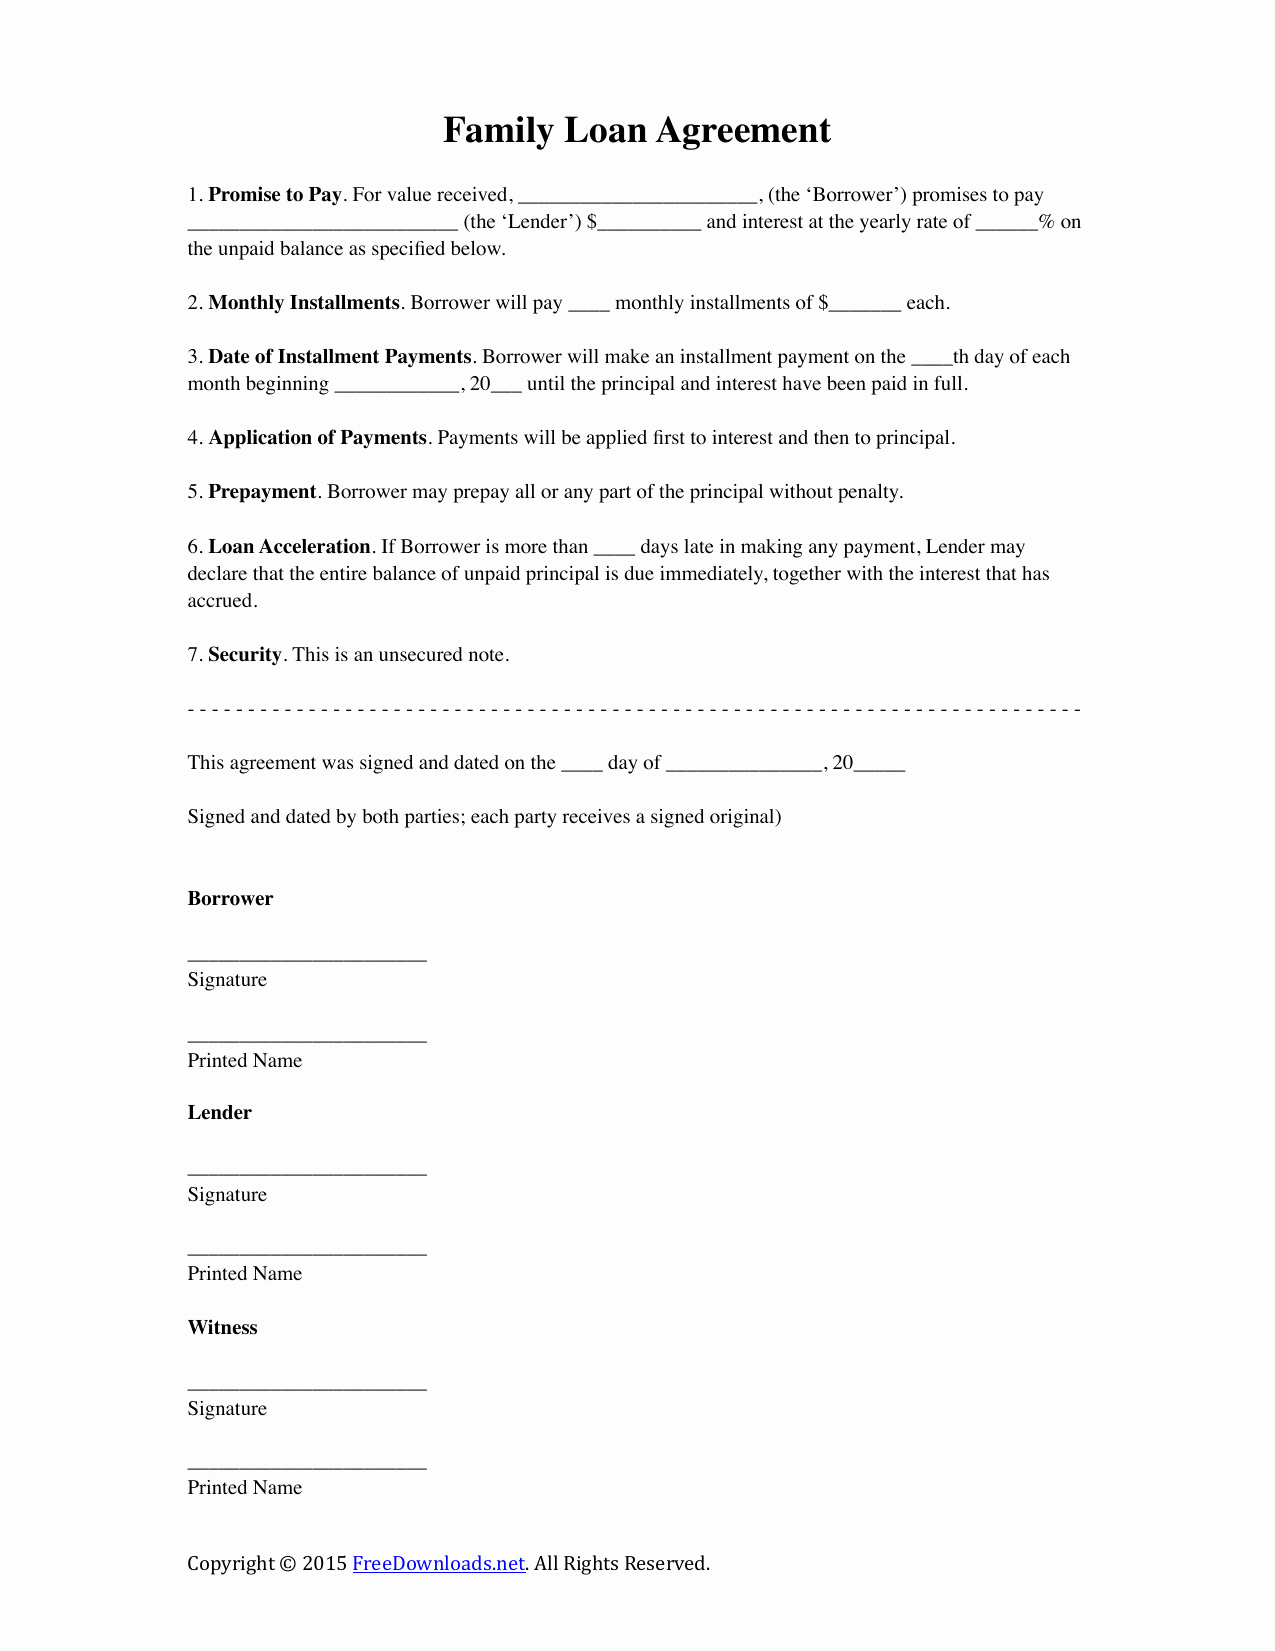 Template for Personal Loan Agreement New Download Family Loan Agreement Template Pdf Rtf